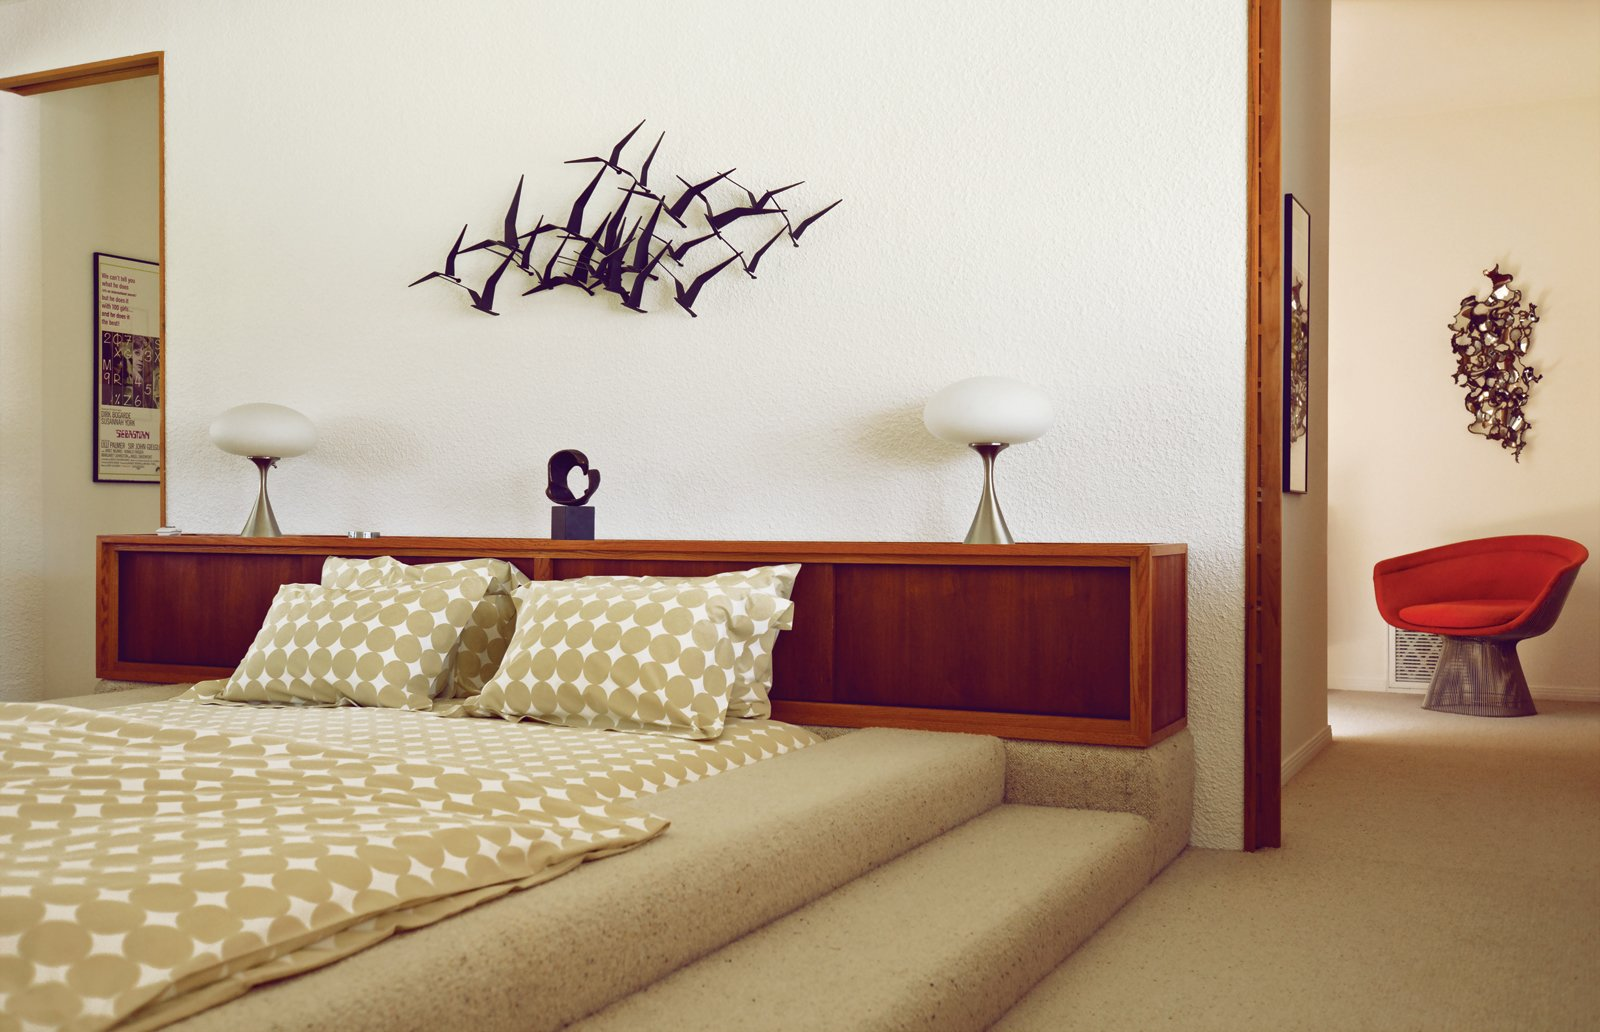 A McKenzie-designed bed and a retro wall-hanging in one bedroom.  Photo 9 of 15 in Modern Home in a California Resort Town